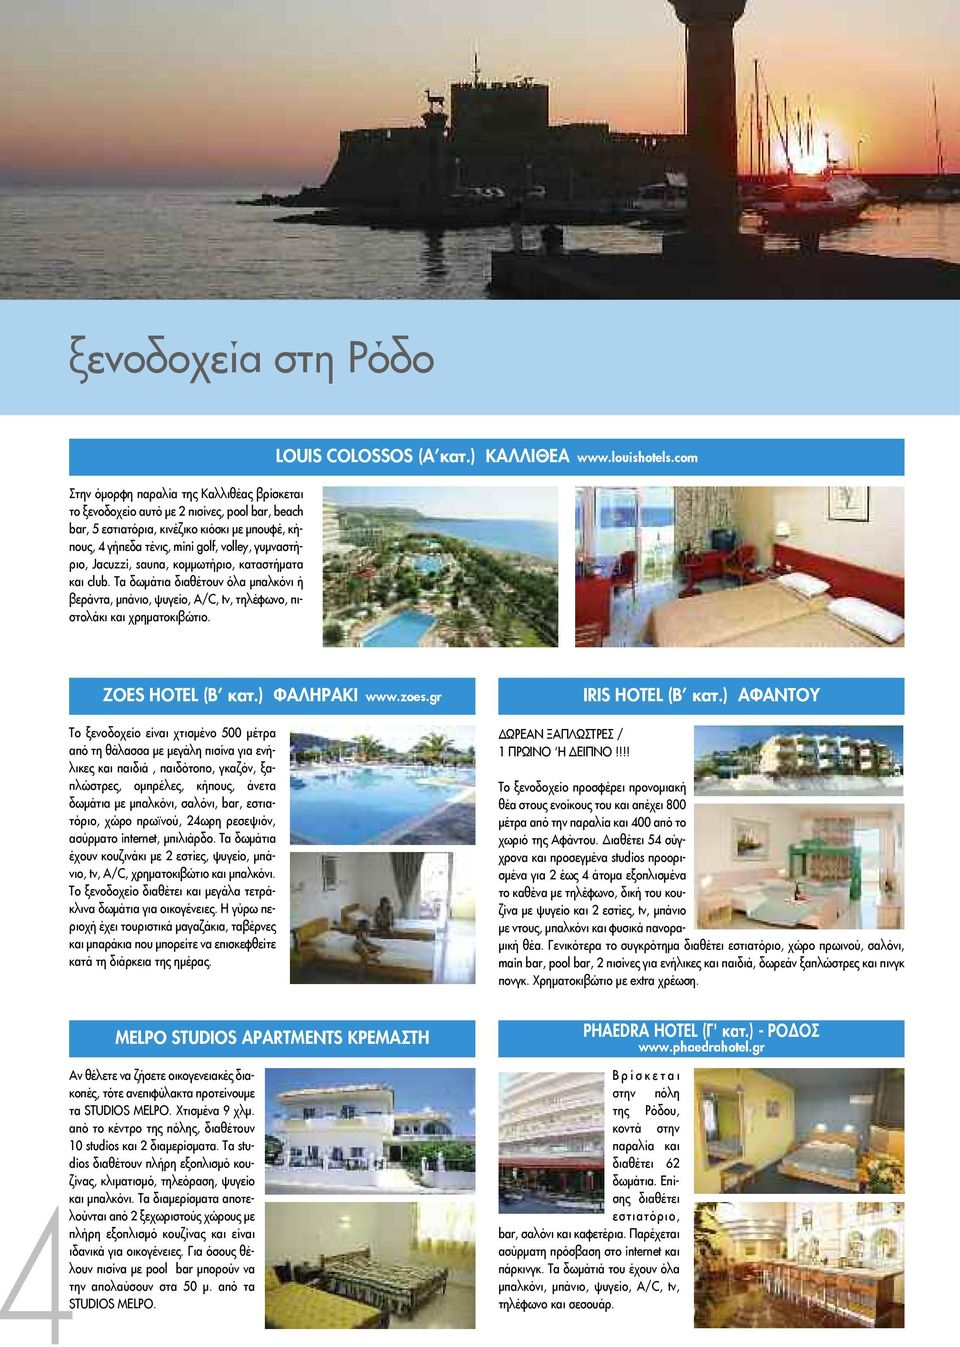 LOUIS COLOSSOS (A κατ.) ΚΑΛΛΙΘΕΑ www.louishotels.com ZOES HOTEL (Β κατ.) ΦΑΛΗΡΑΚΙ www.zoes.